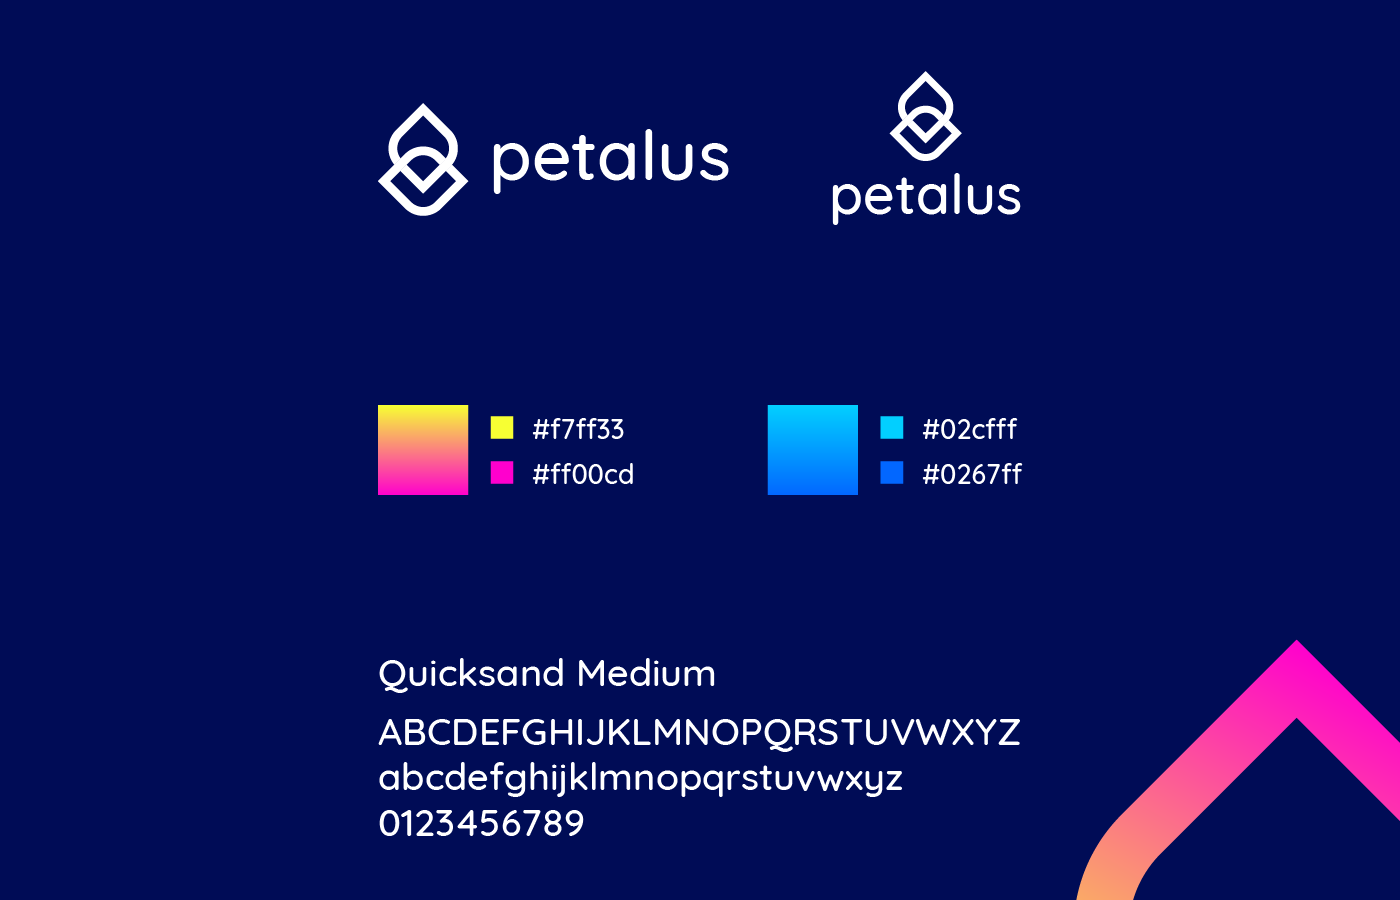 petalus-font-and-color